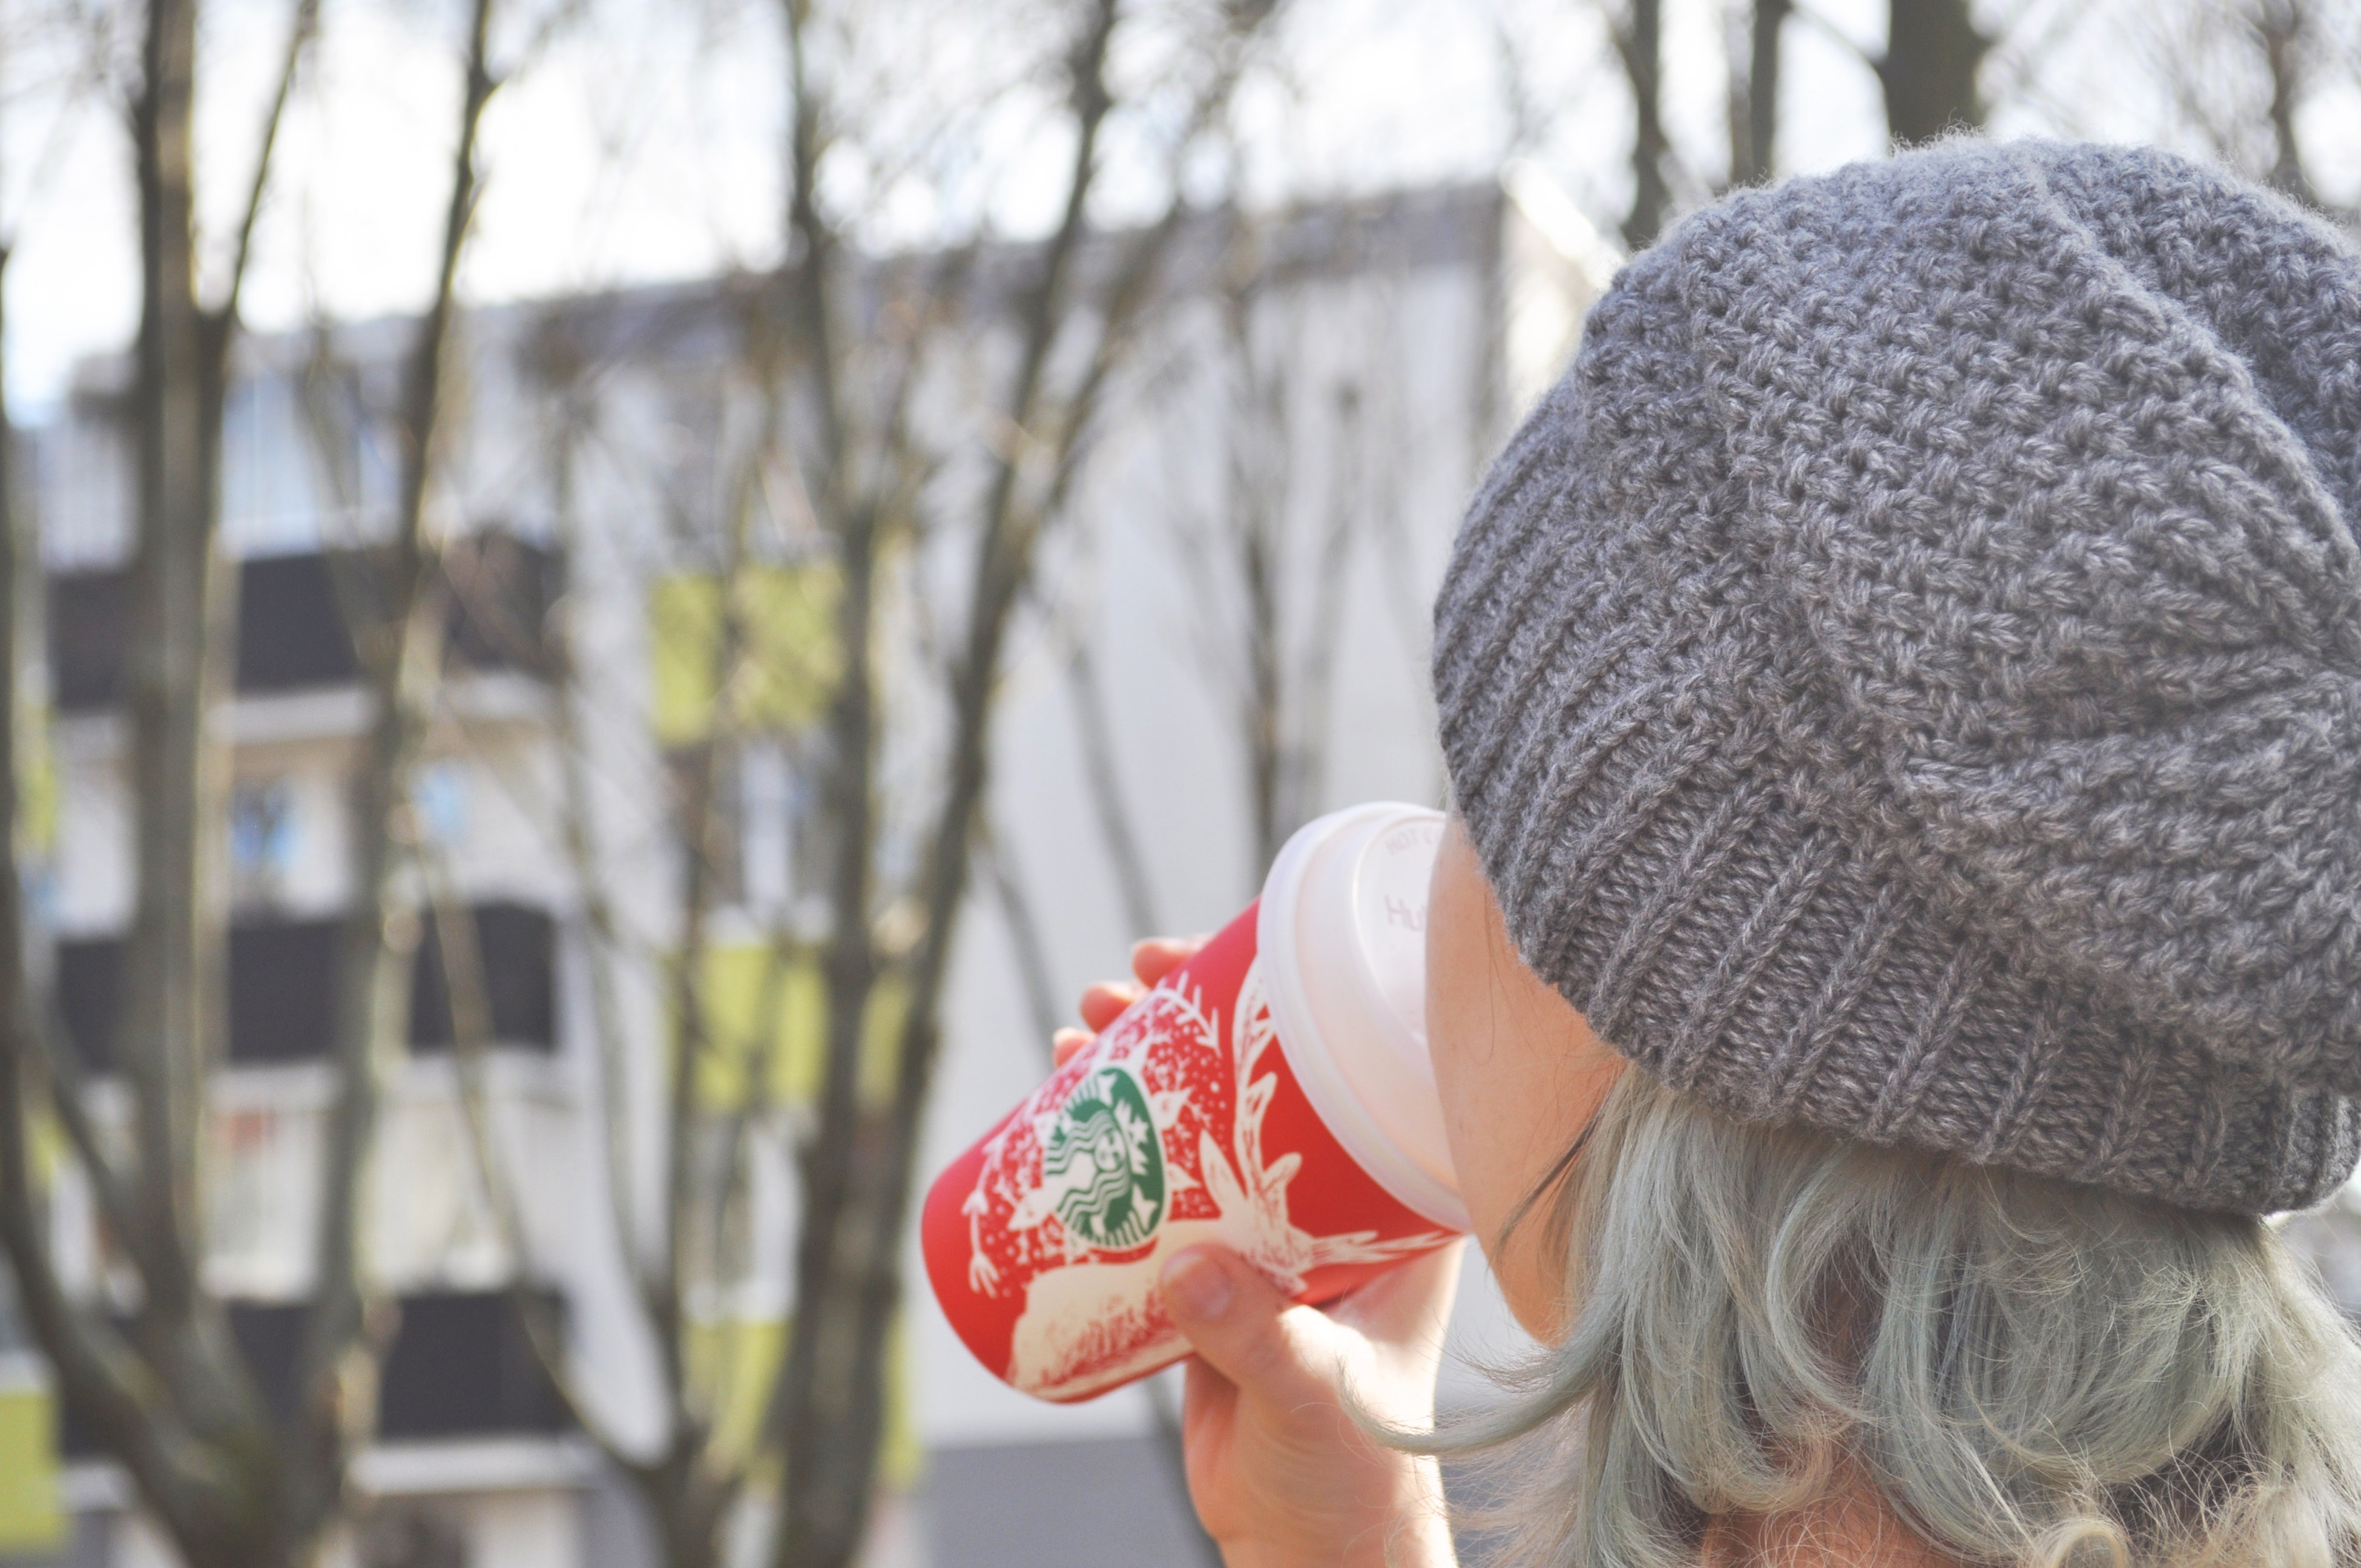 Woman Holding a cup, Refreshing, Portrait, People, Outdoors, HQ Photo